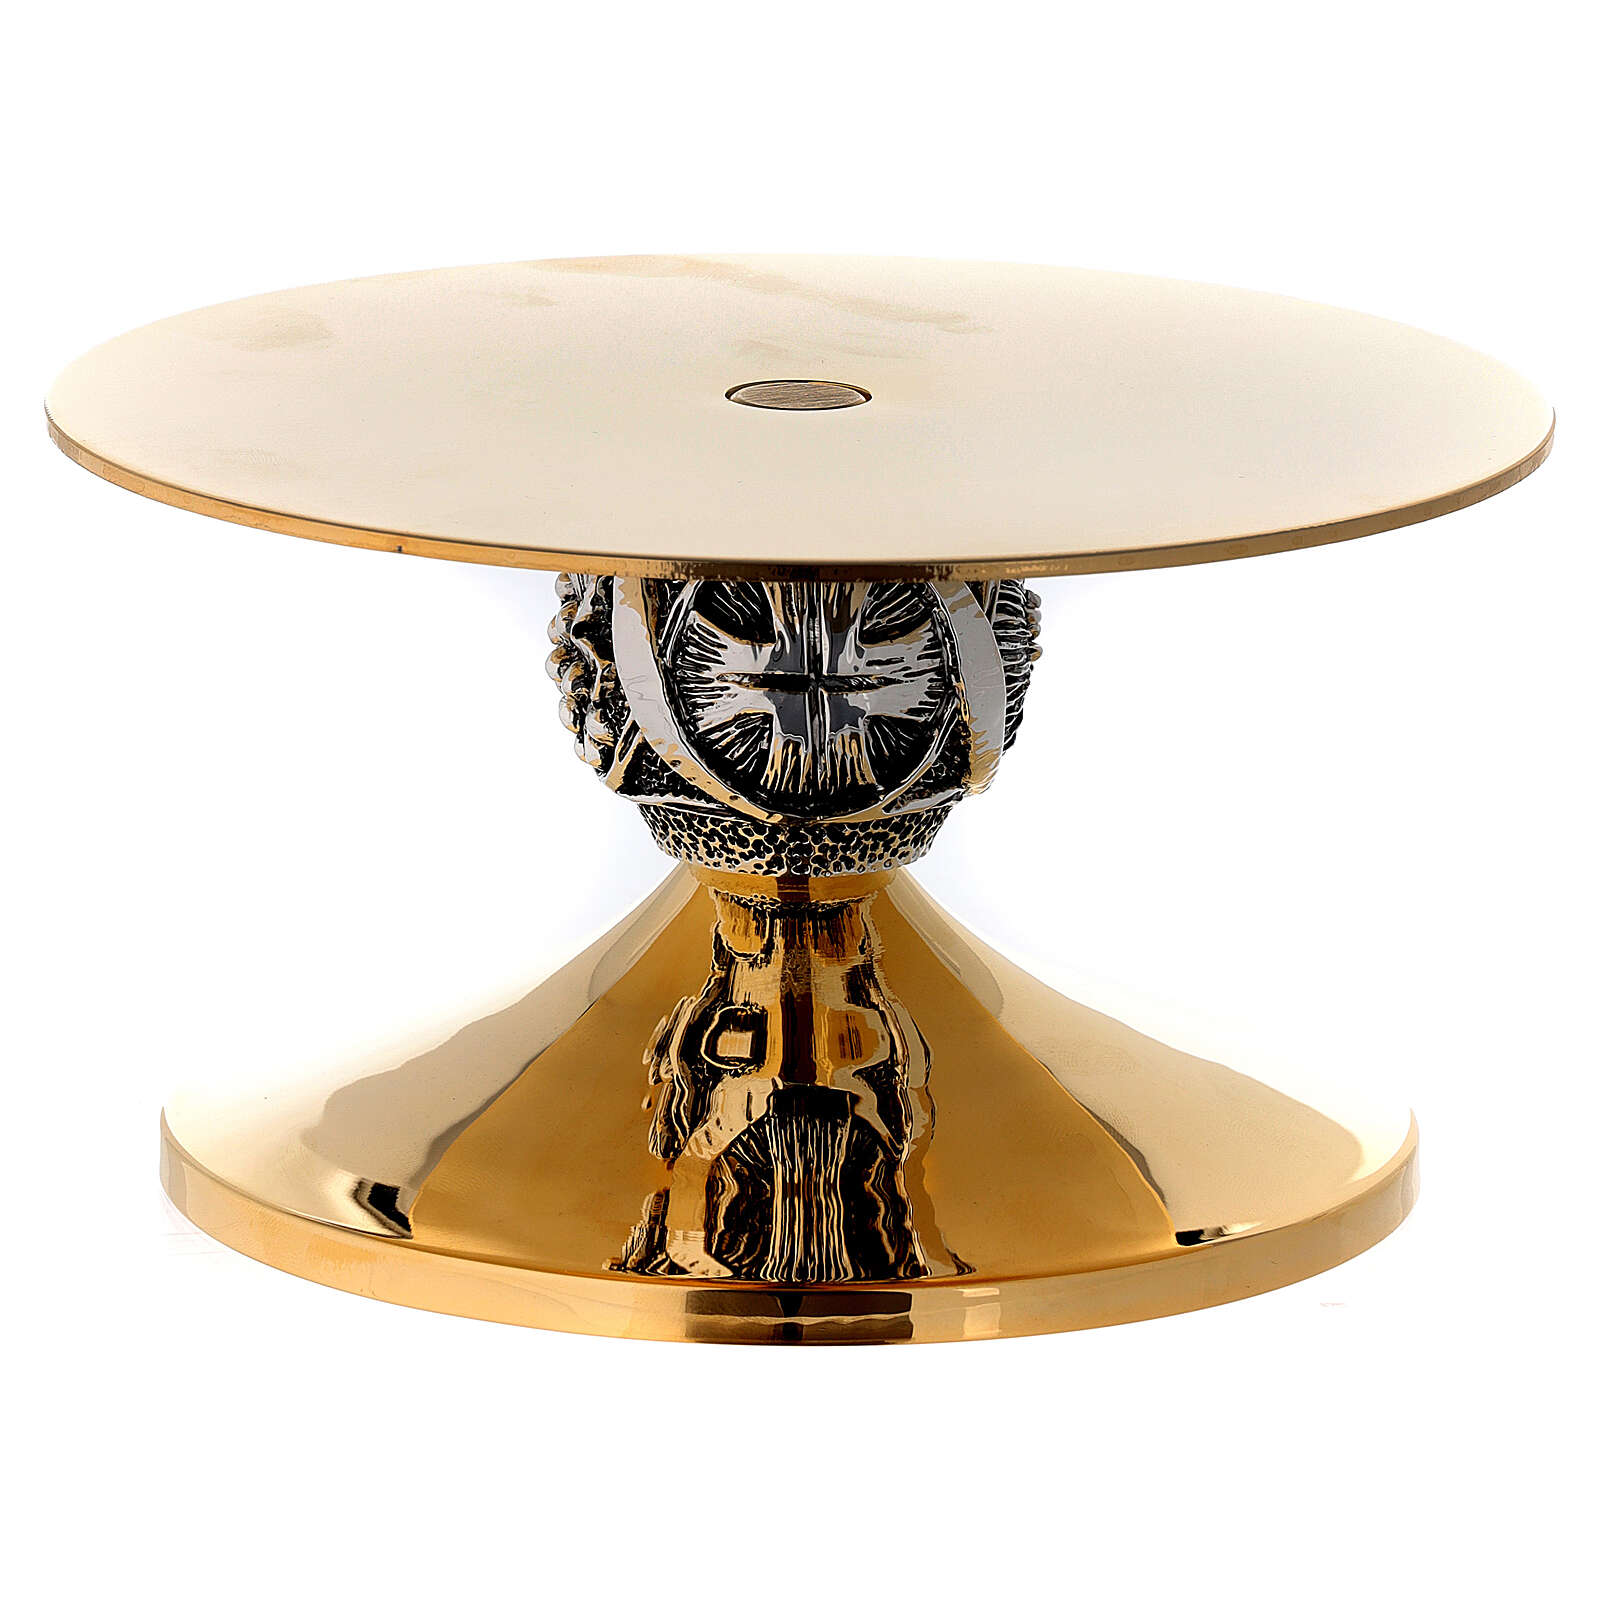 Monstrance stand with cross and grapes decoration, burnished effect diam. 14 cm 4